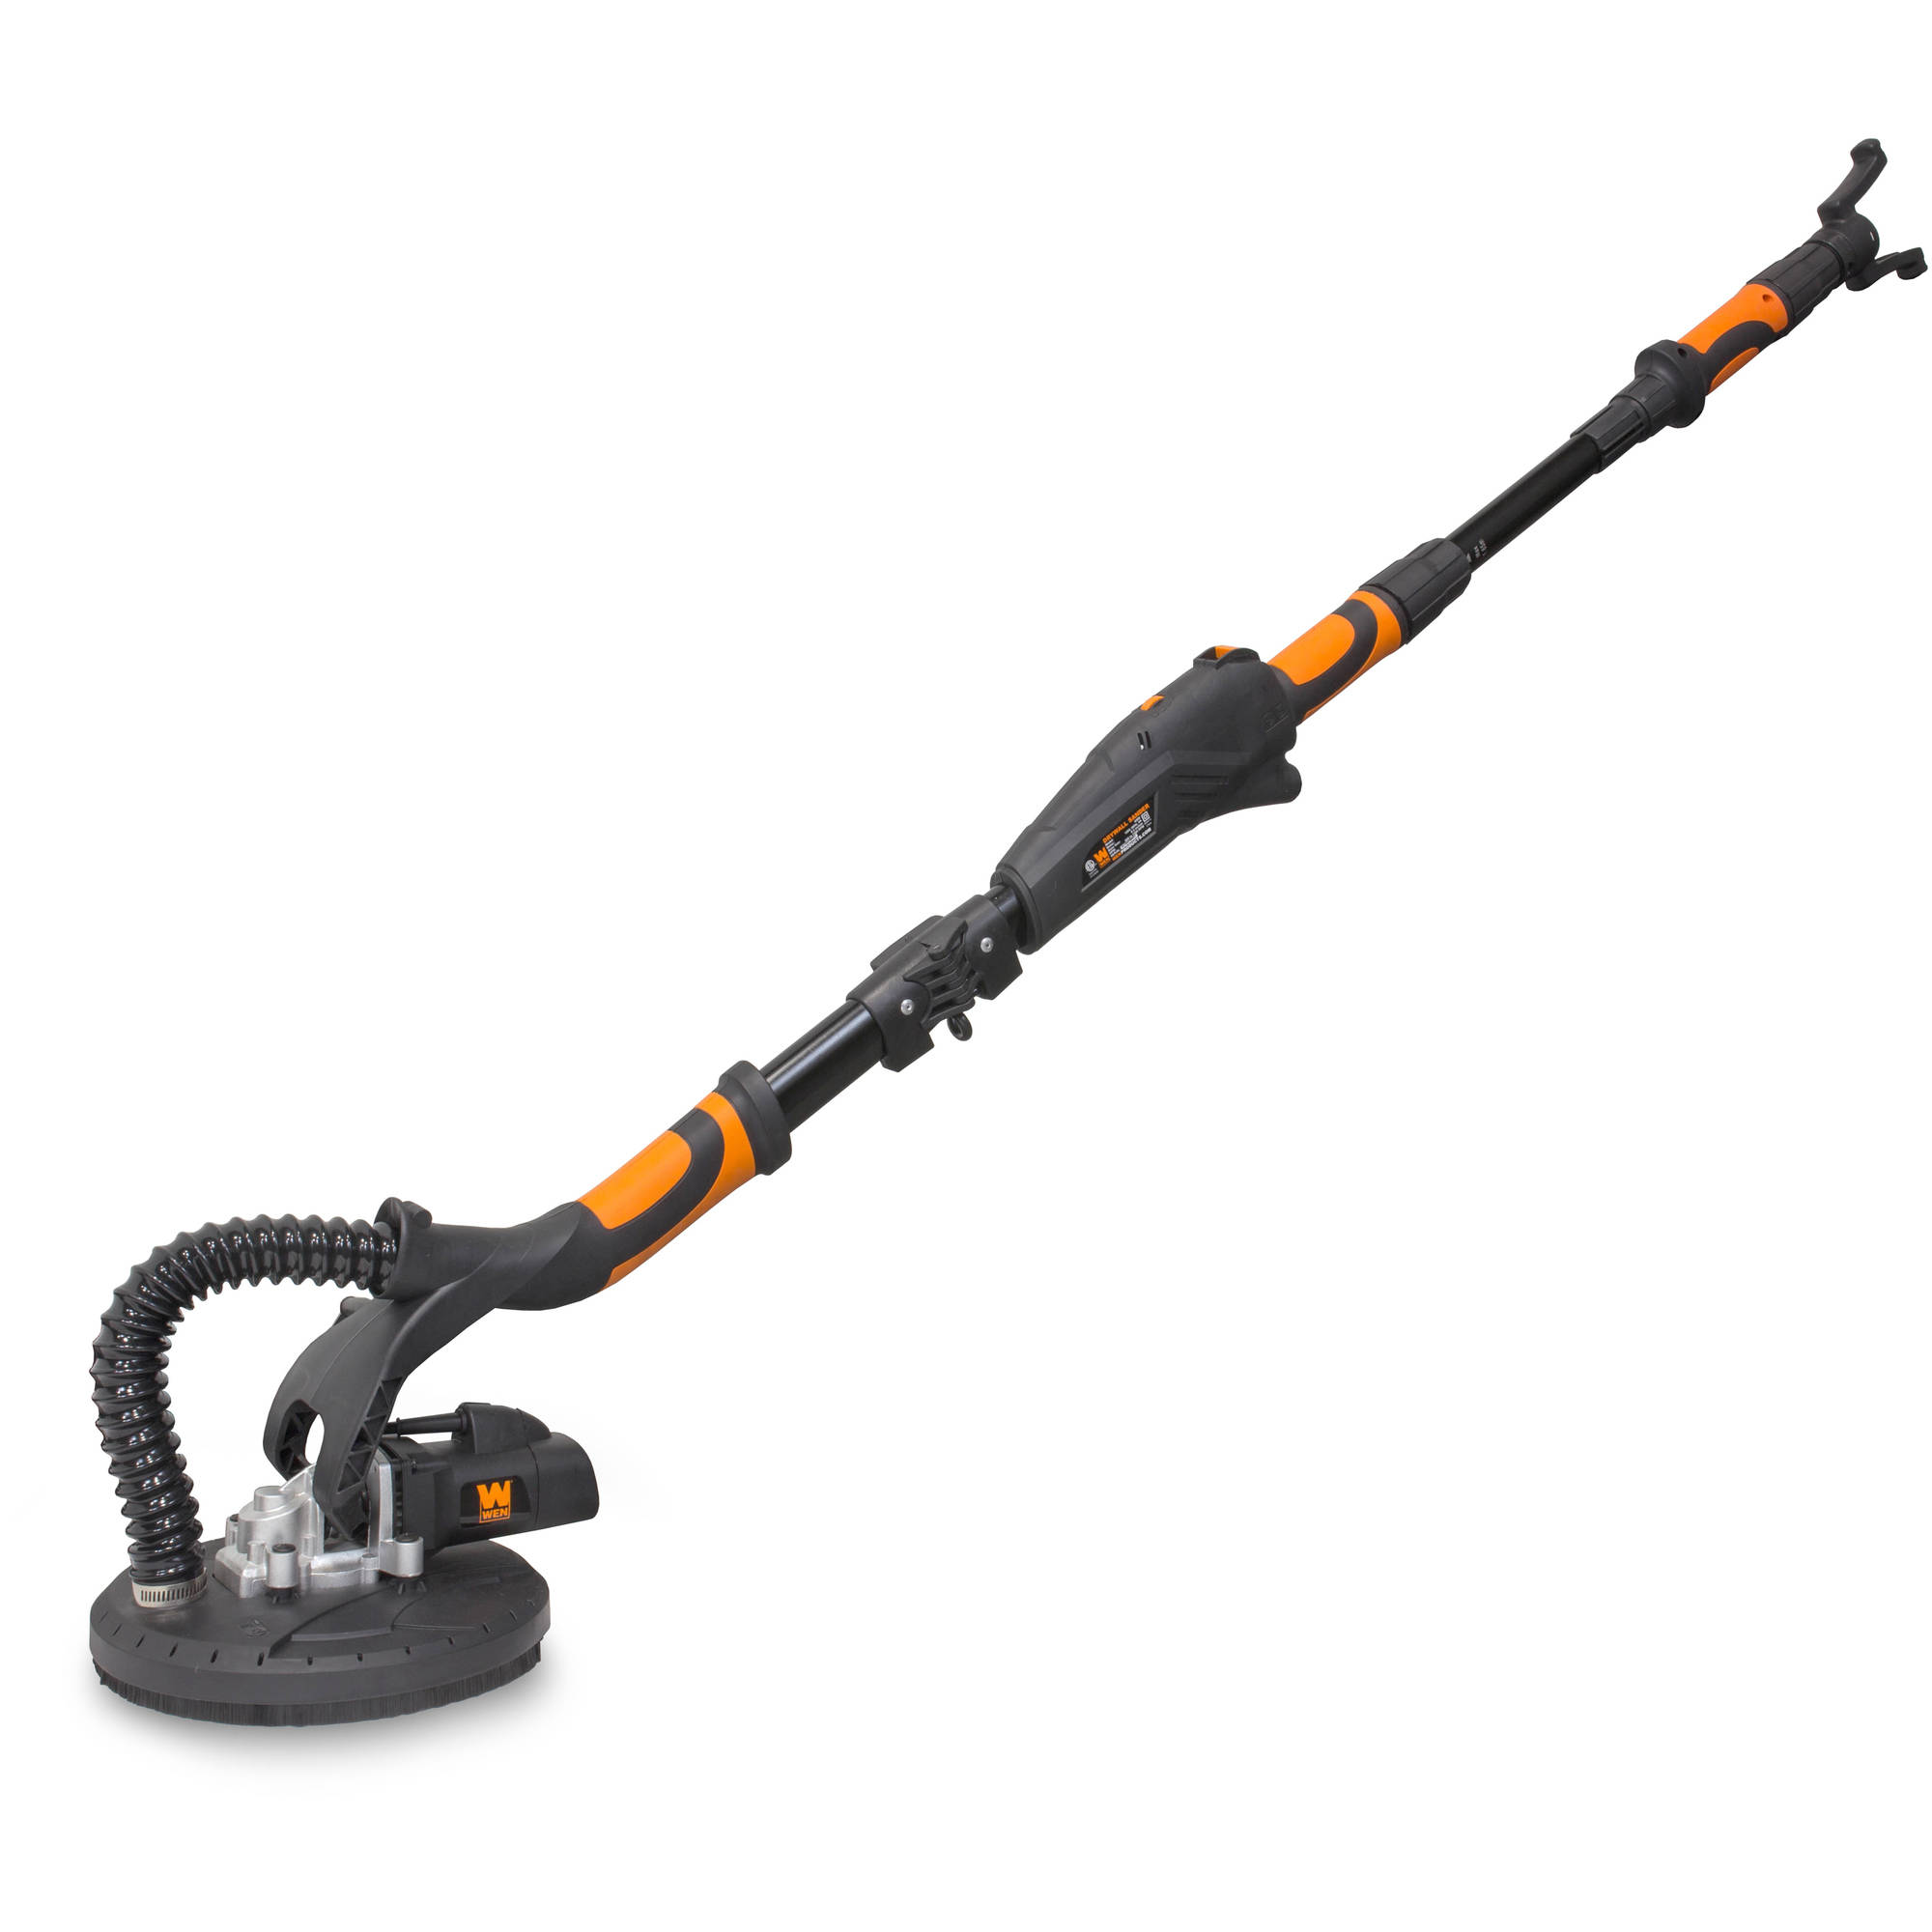 WEN Variable Speed 5-Amp Drywall Sander with 15\' Hose